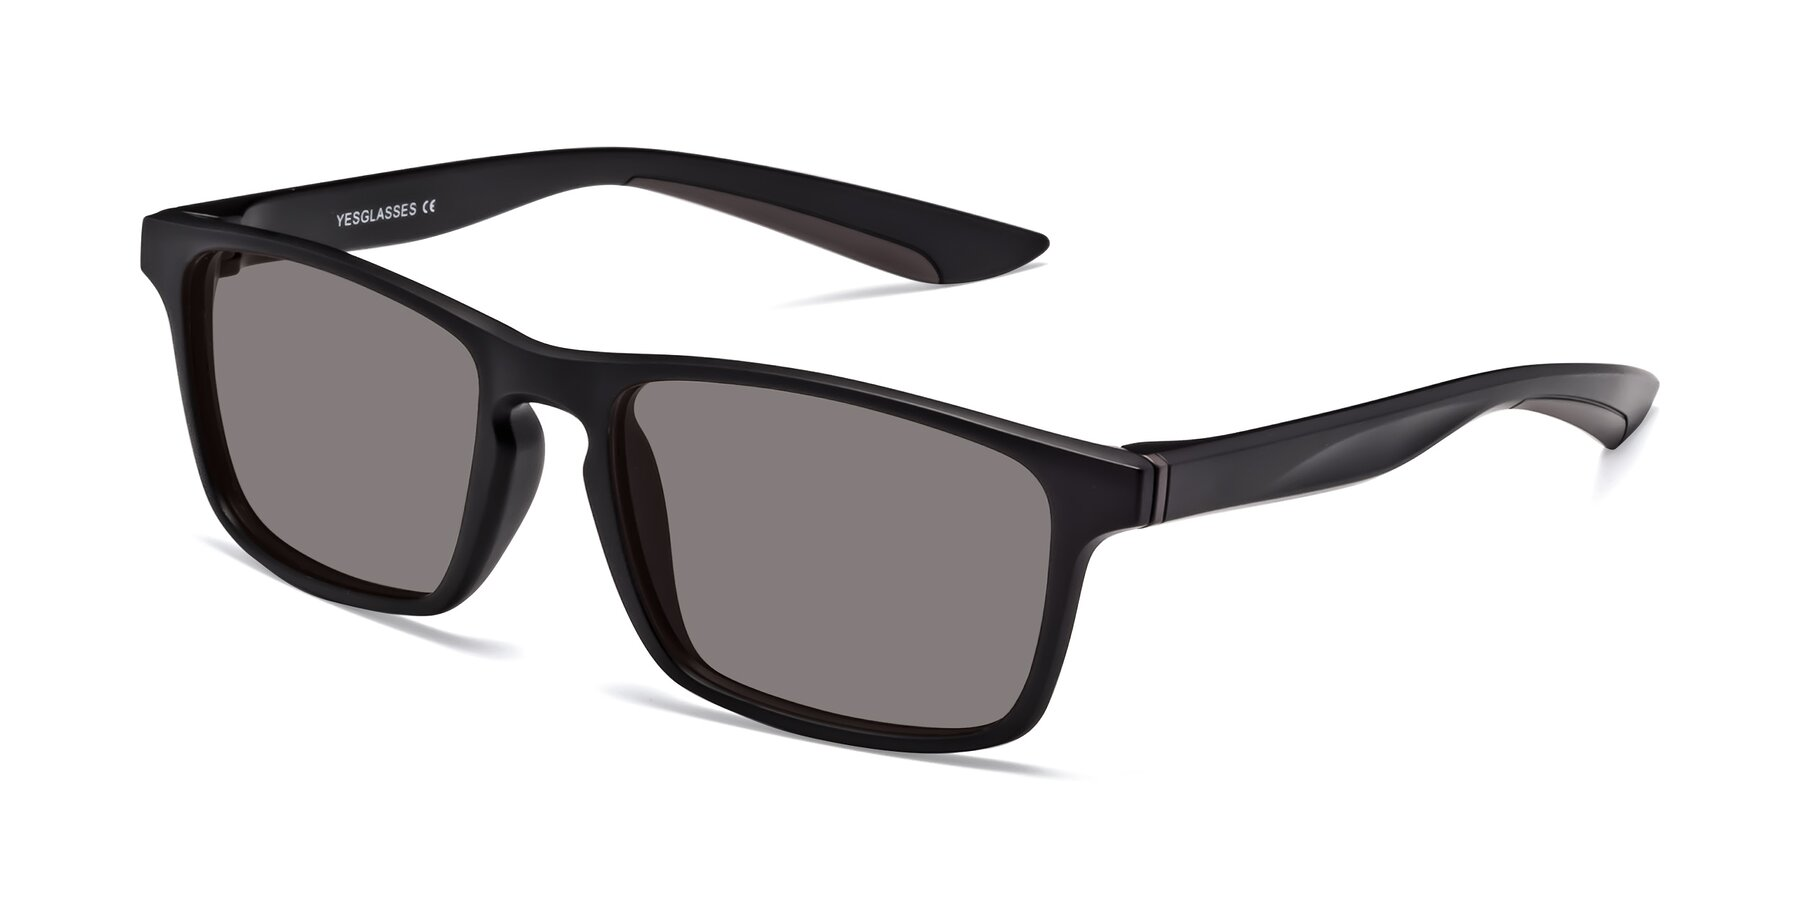 Angle of Passion in Matte Black-Coffee with Medium Gray Tinted Lenses